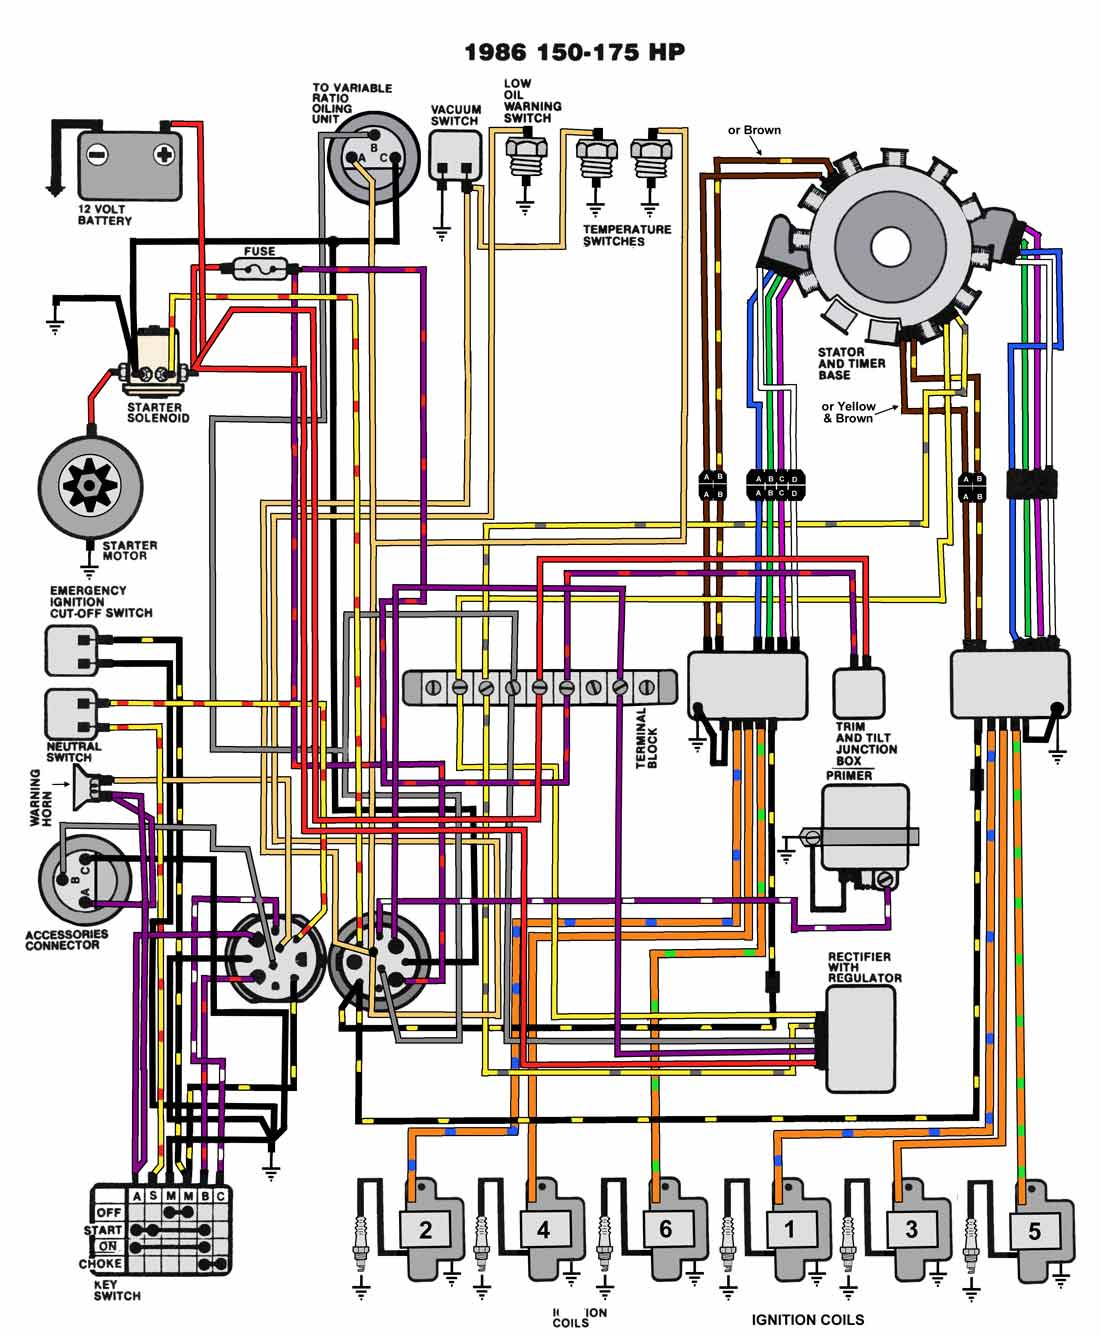 evinrude johnson outboard wiring diagrams mastertech marine rh maxrules com  1969 Johnson Outboard Wiring Diagram 1978 Johnson Outboard Wiring Diagram